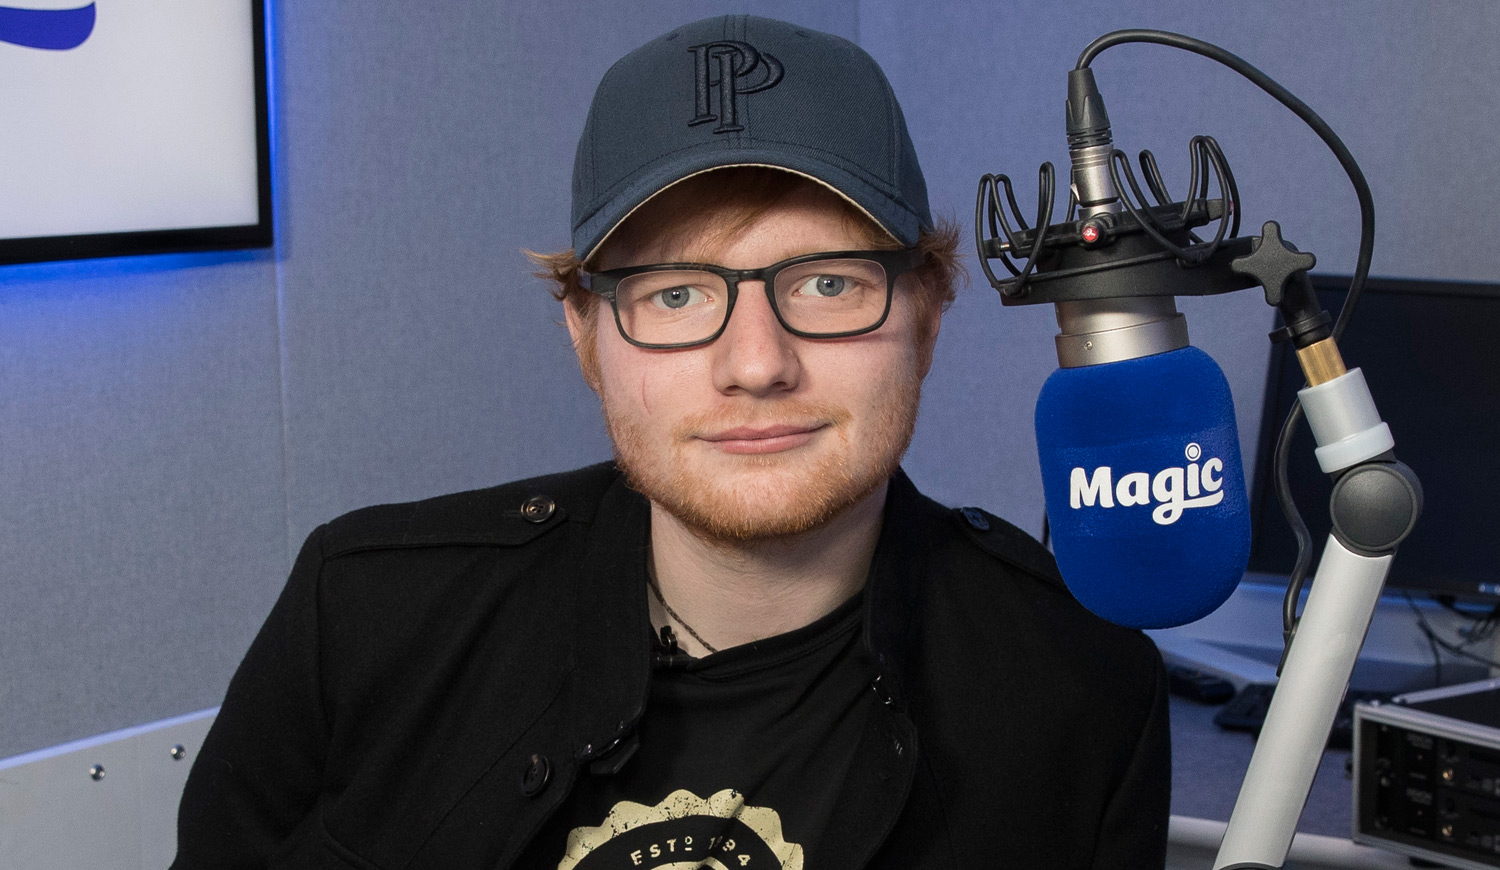 ed sheeran descriptive essay Ed sheeran was born in february 1991 in halifax, england he began playing  guitar at a young age and soon after started writing his own.